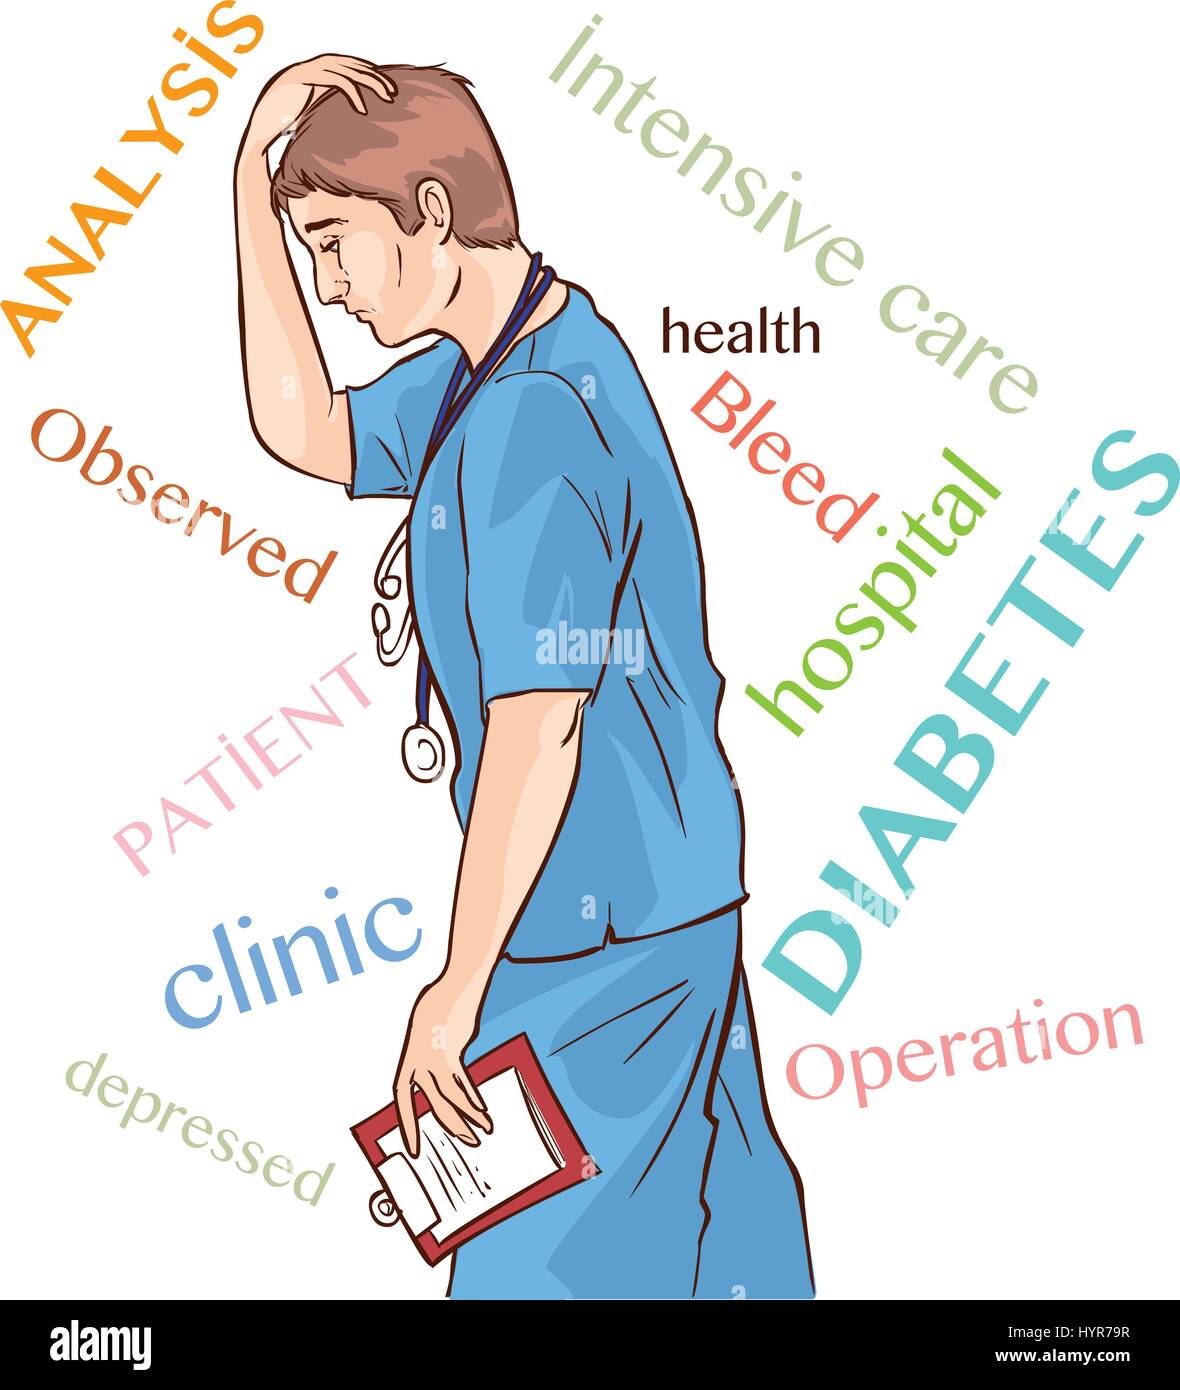 Image result for depressed doctor cartoon